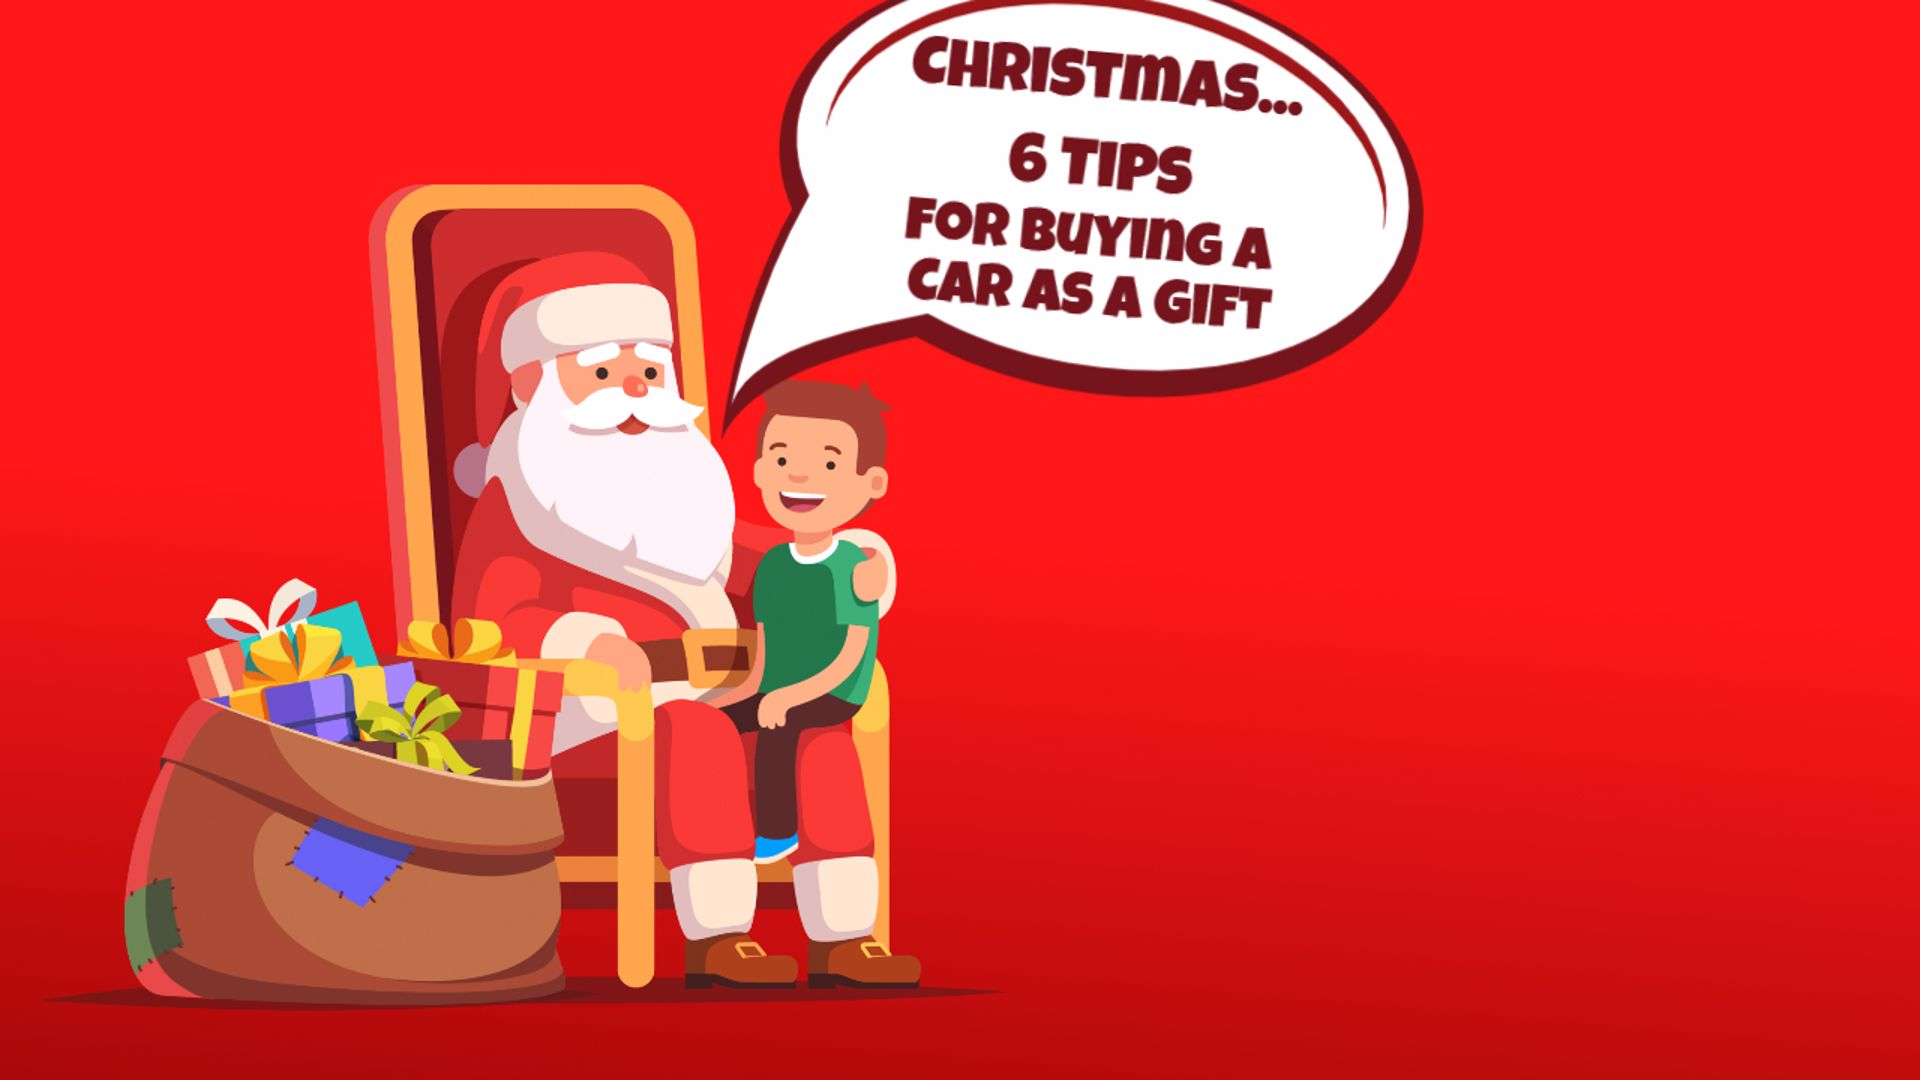 Christmas 6 Tips for Buying a Car as a Gift